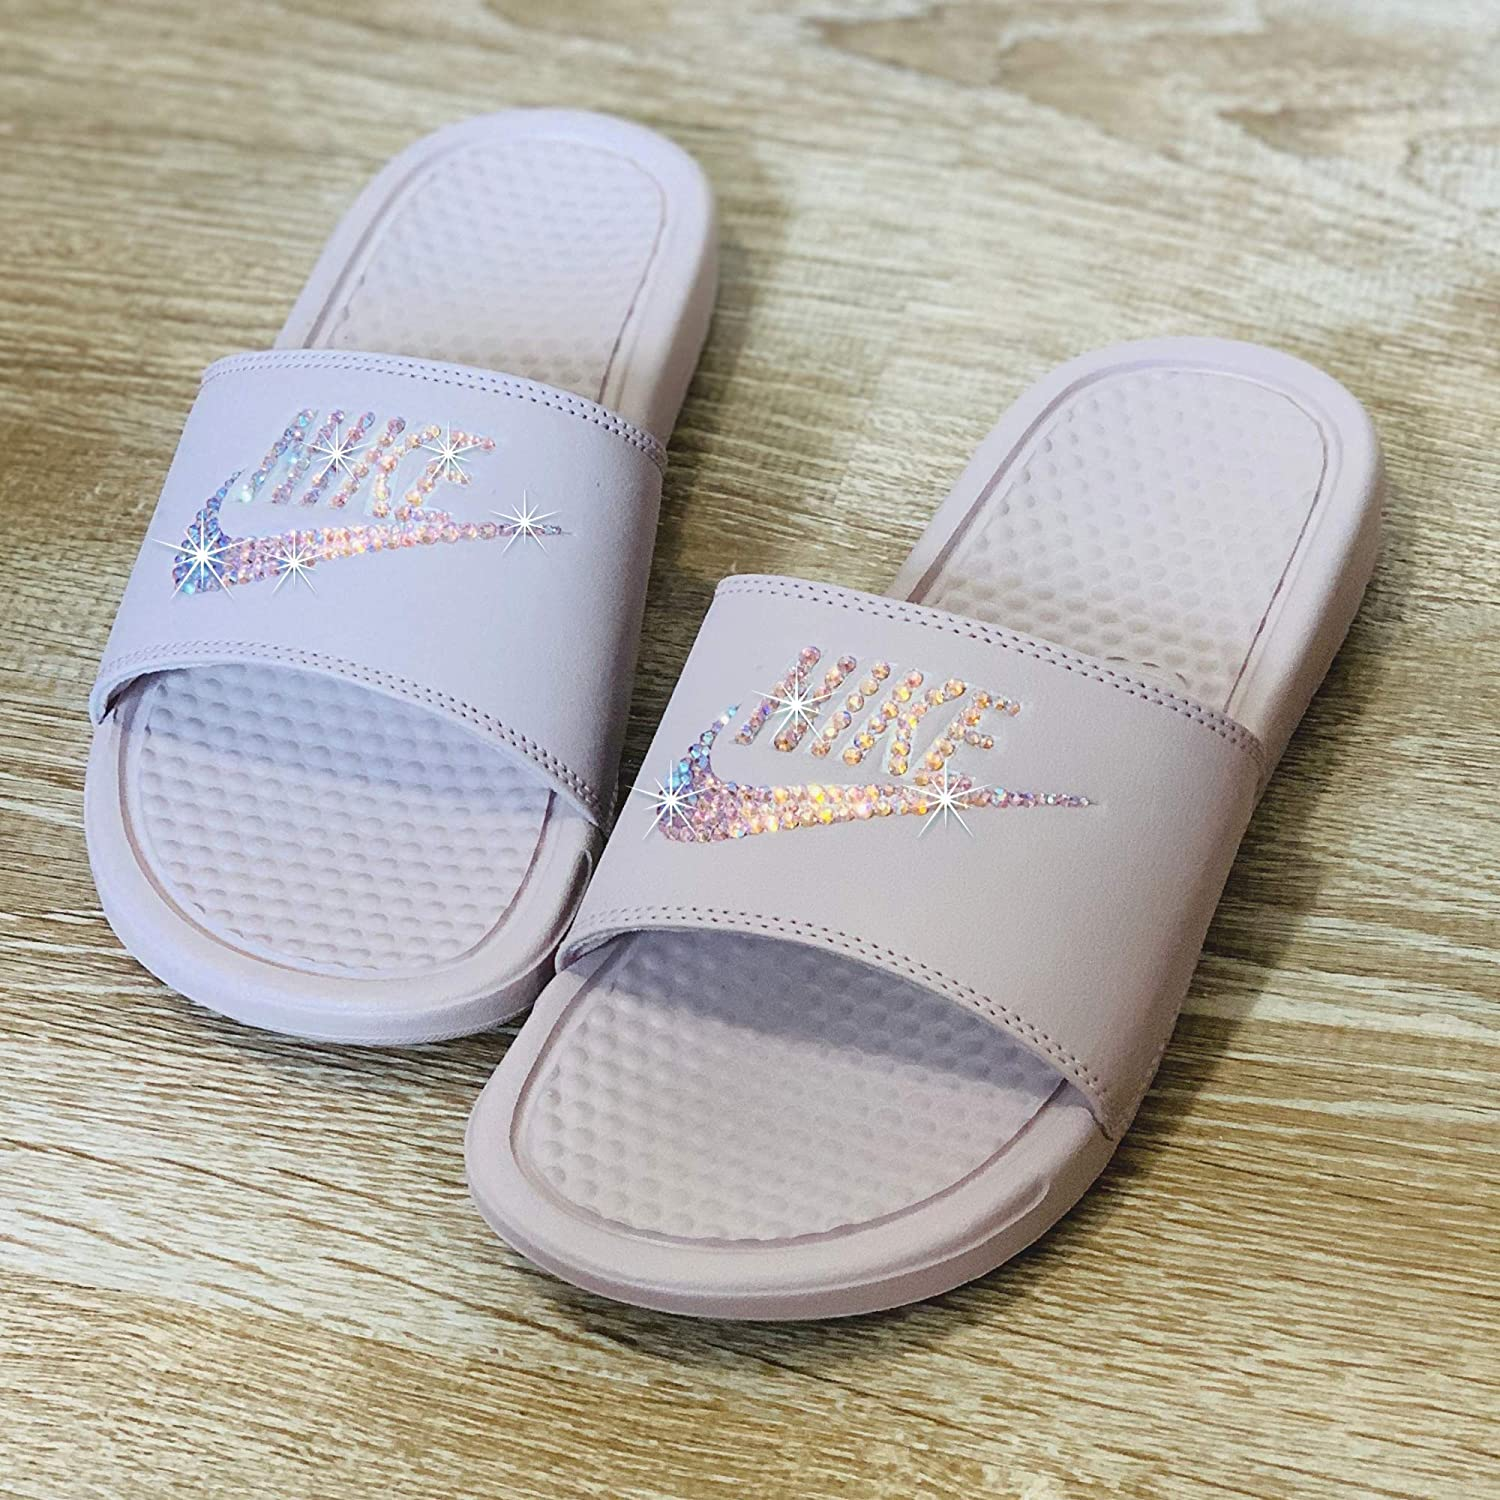 f861cbf0e3a1a Swarovski Nike Slides - Nike Slip On Shoes For Women Rose Color NIKE  Benassi JDI Slides with Crystals Custom Nike Bedazzled Slip On Glitter Kicks